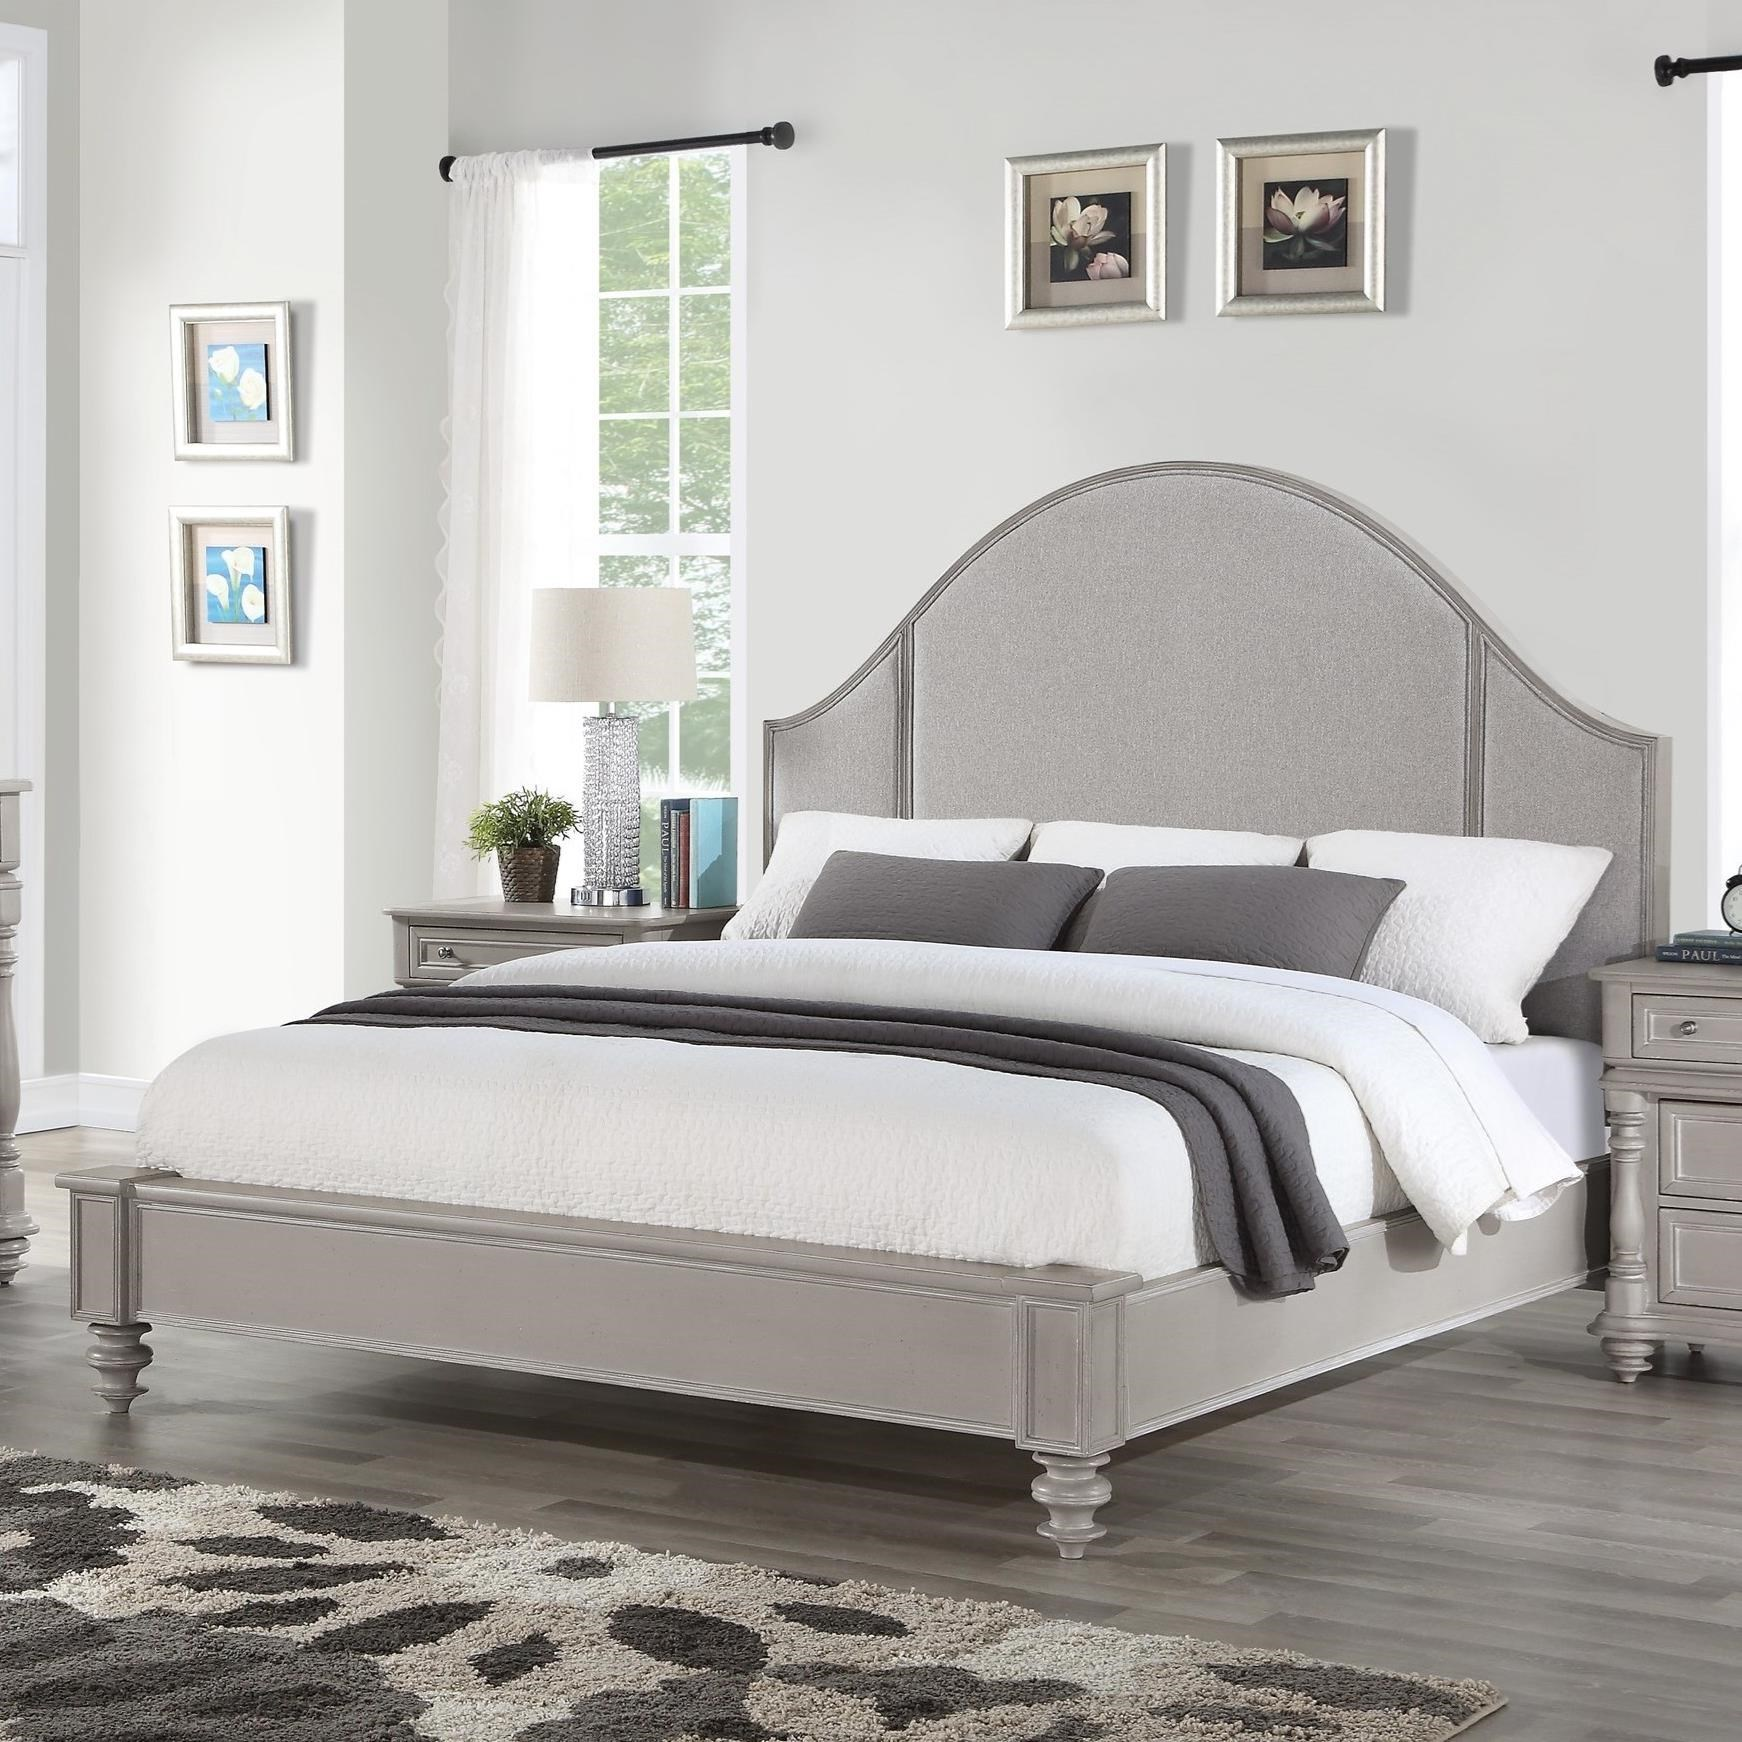 Heirloom Cal King Upholstered Bed by Flexsteel Wynwood Collection at Northeast Factory Direct